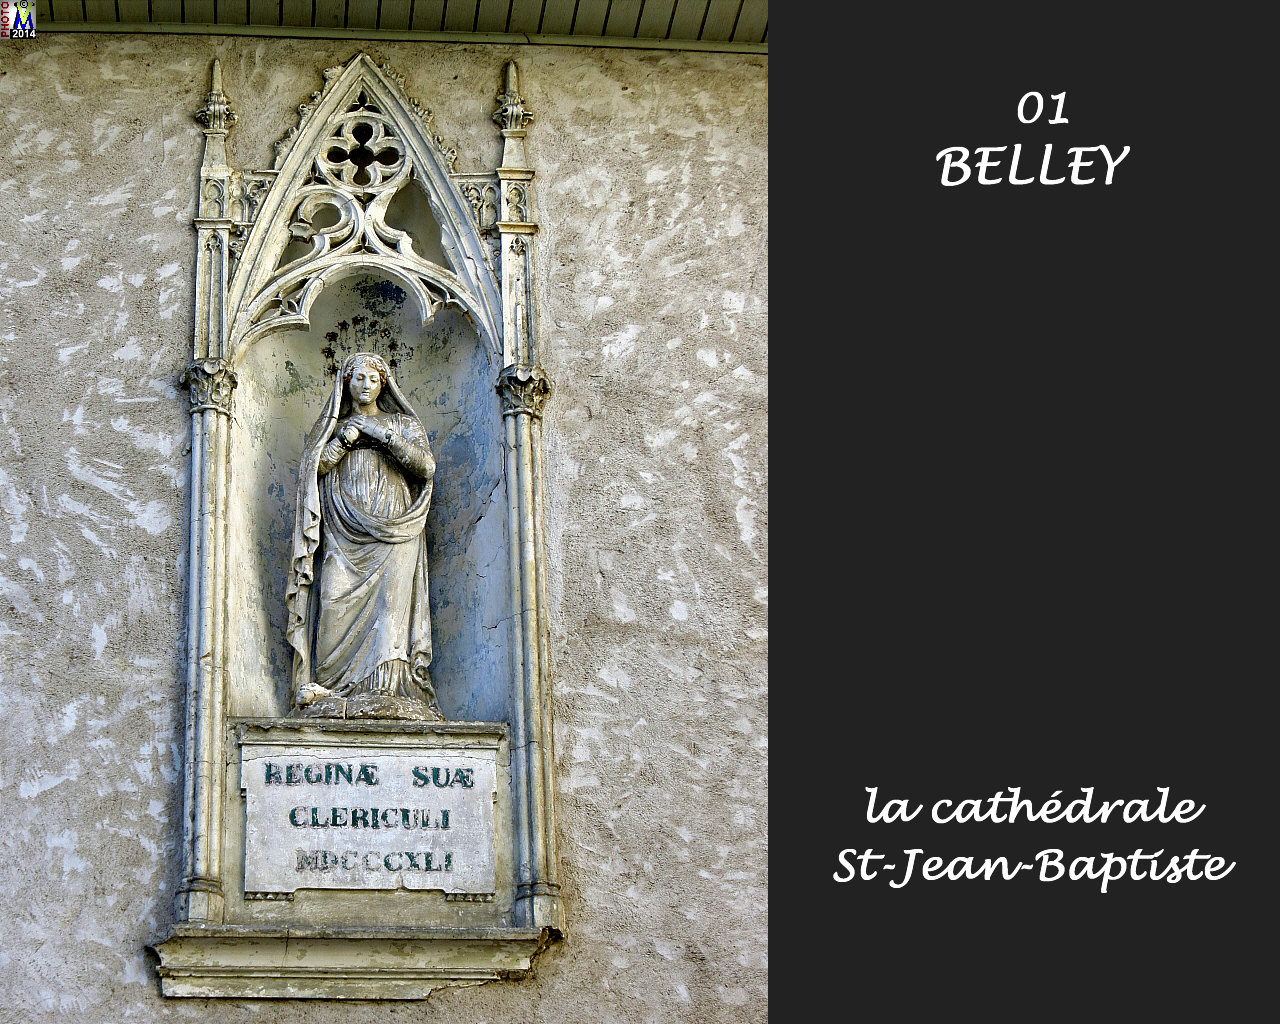 01BELLEY_cathedrale_124.jpg